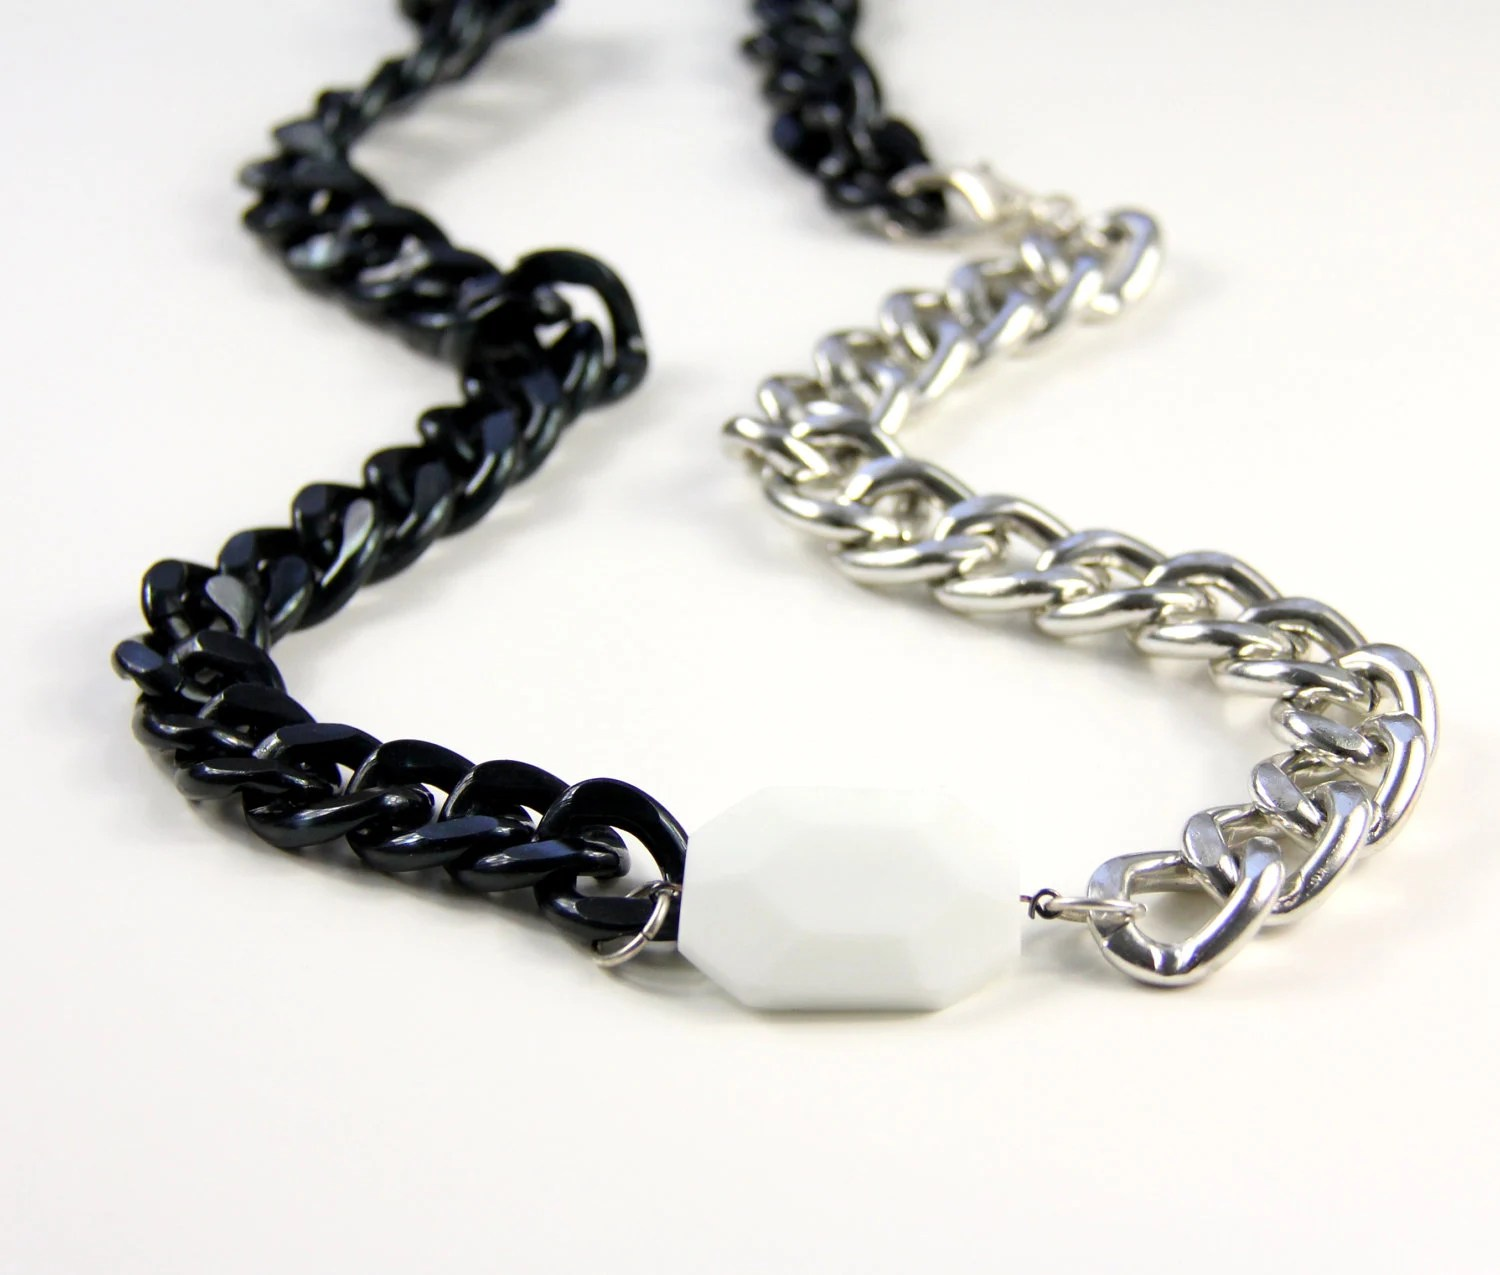 Large White Stone Chunky Chain Necklace Black Silver Chunky Chain Statement Necklace LE BLANC NOIR - CalypteCollection